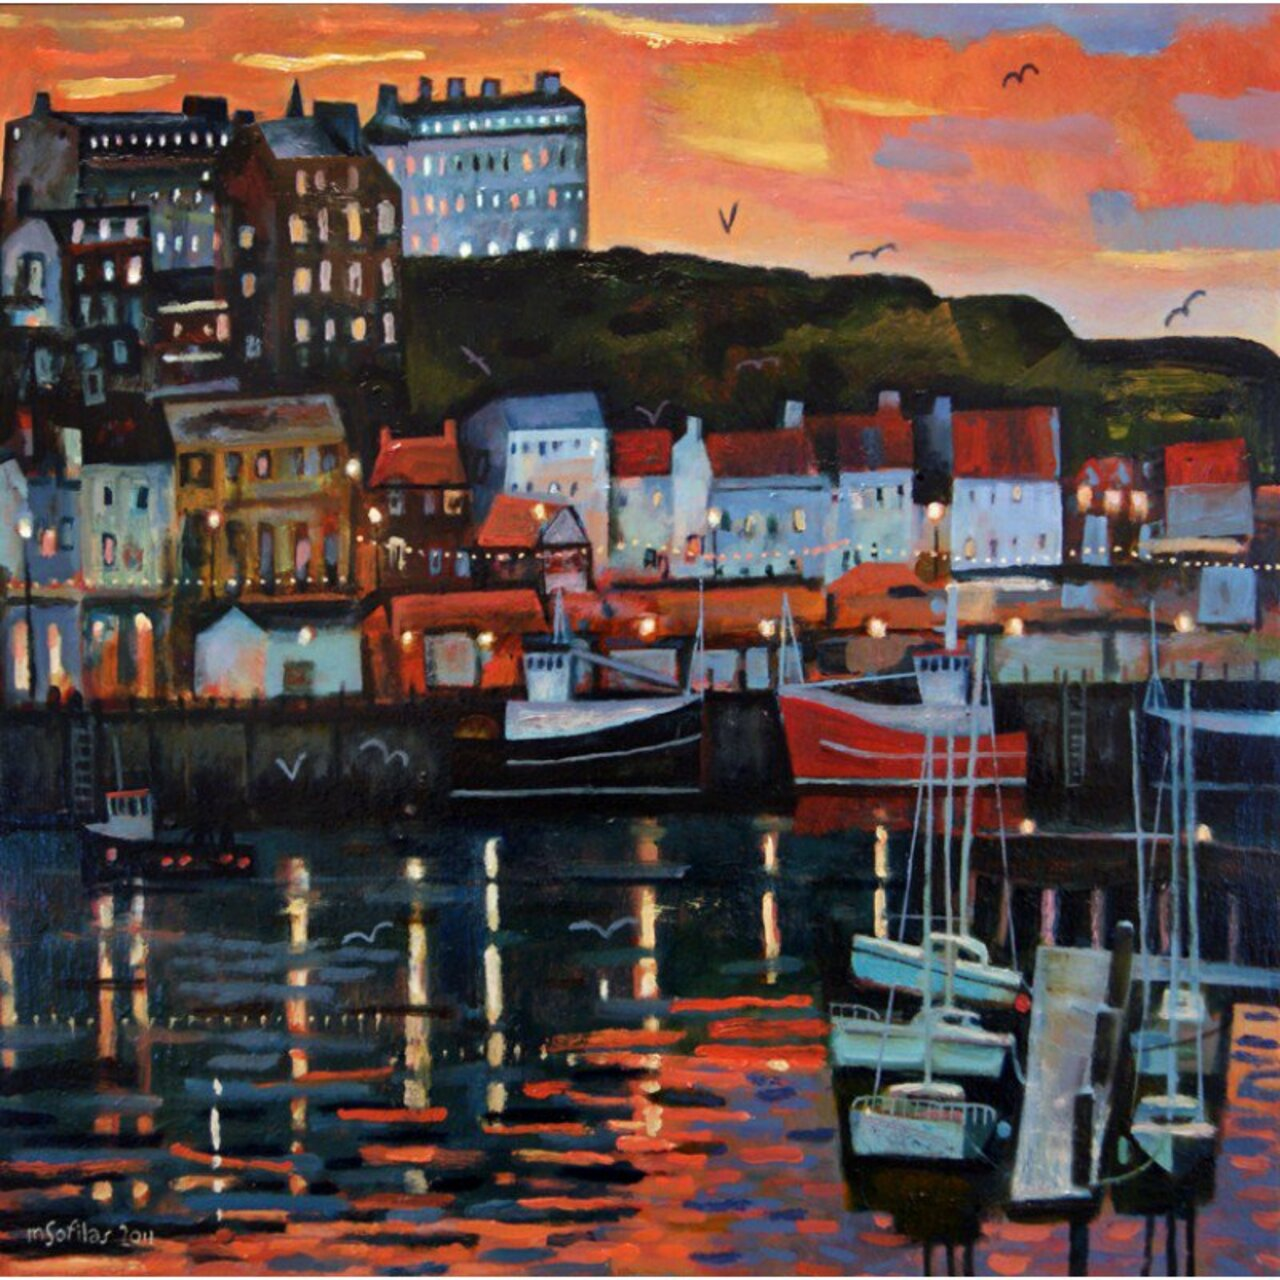 Whitby Harbour - A time to reflect by Mark Sofilas http://bit.ly/1YjG0XI #Art #NorthYorkshire https://t.co/Ovvci1LEPq